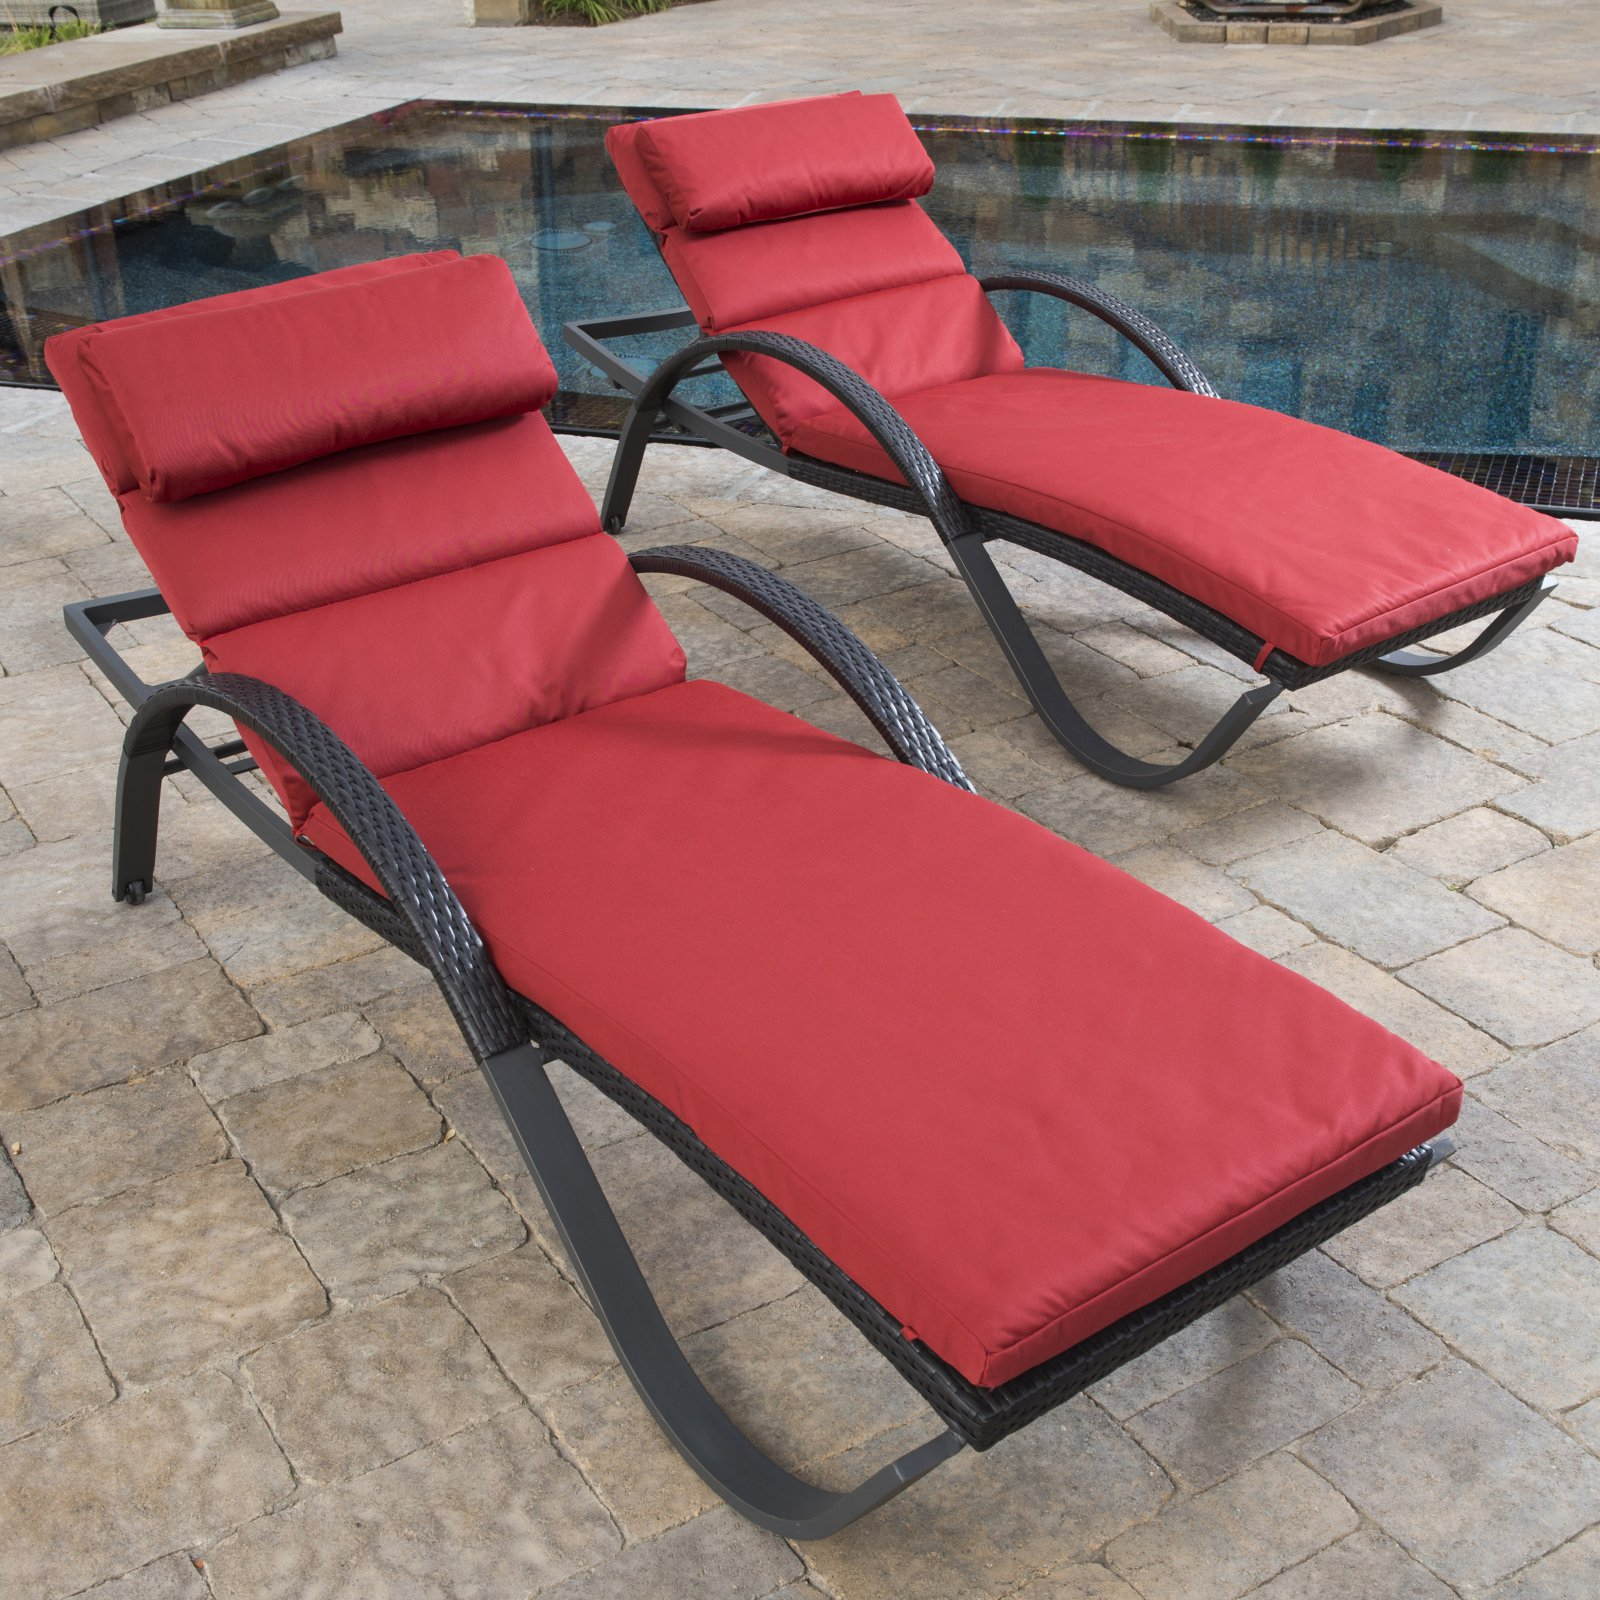 RST Outdoor Cantina Deco Lounger with Cushion and Bolster Pillow - Set of 2